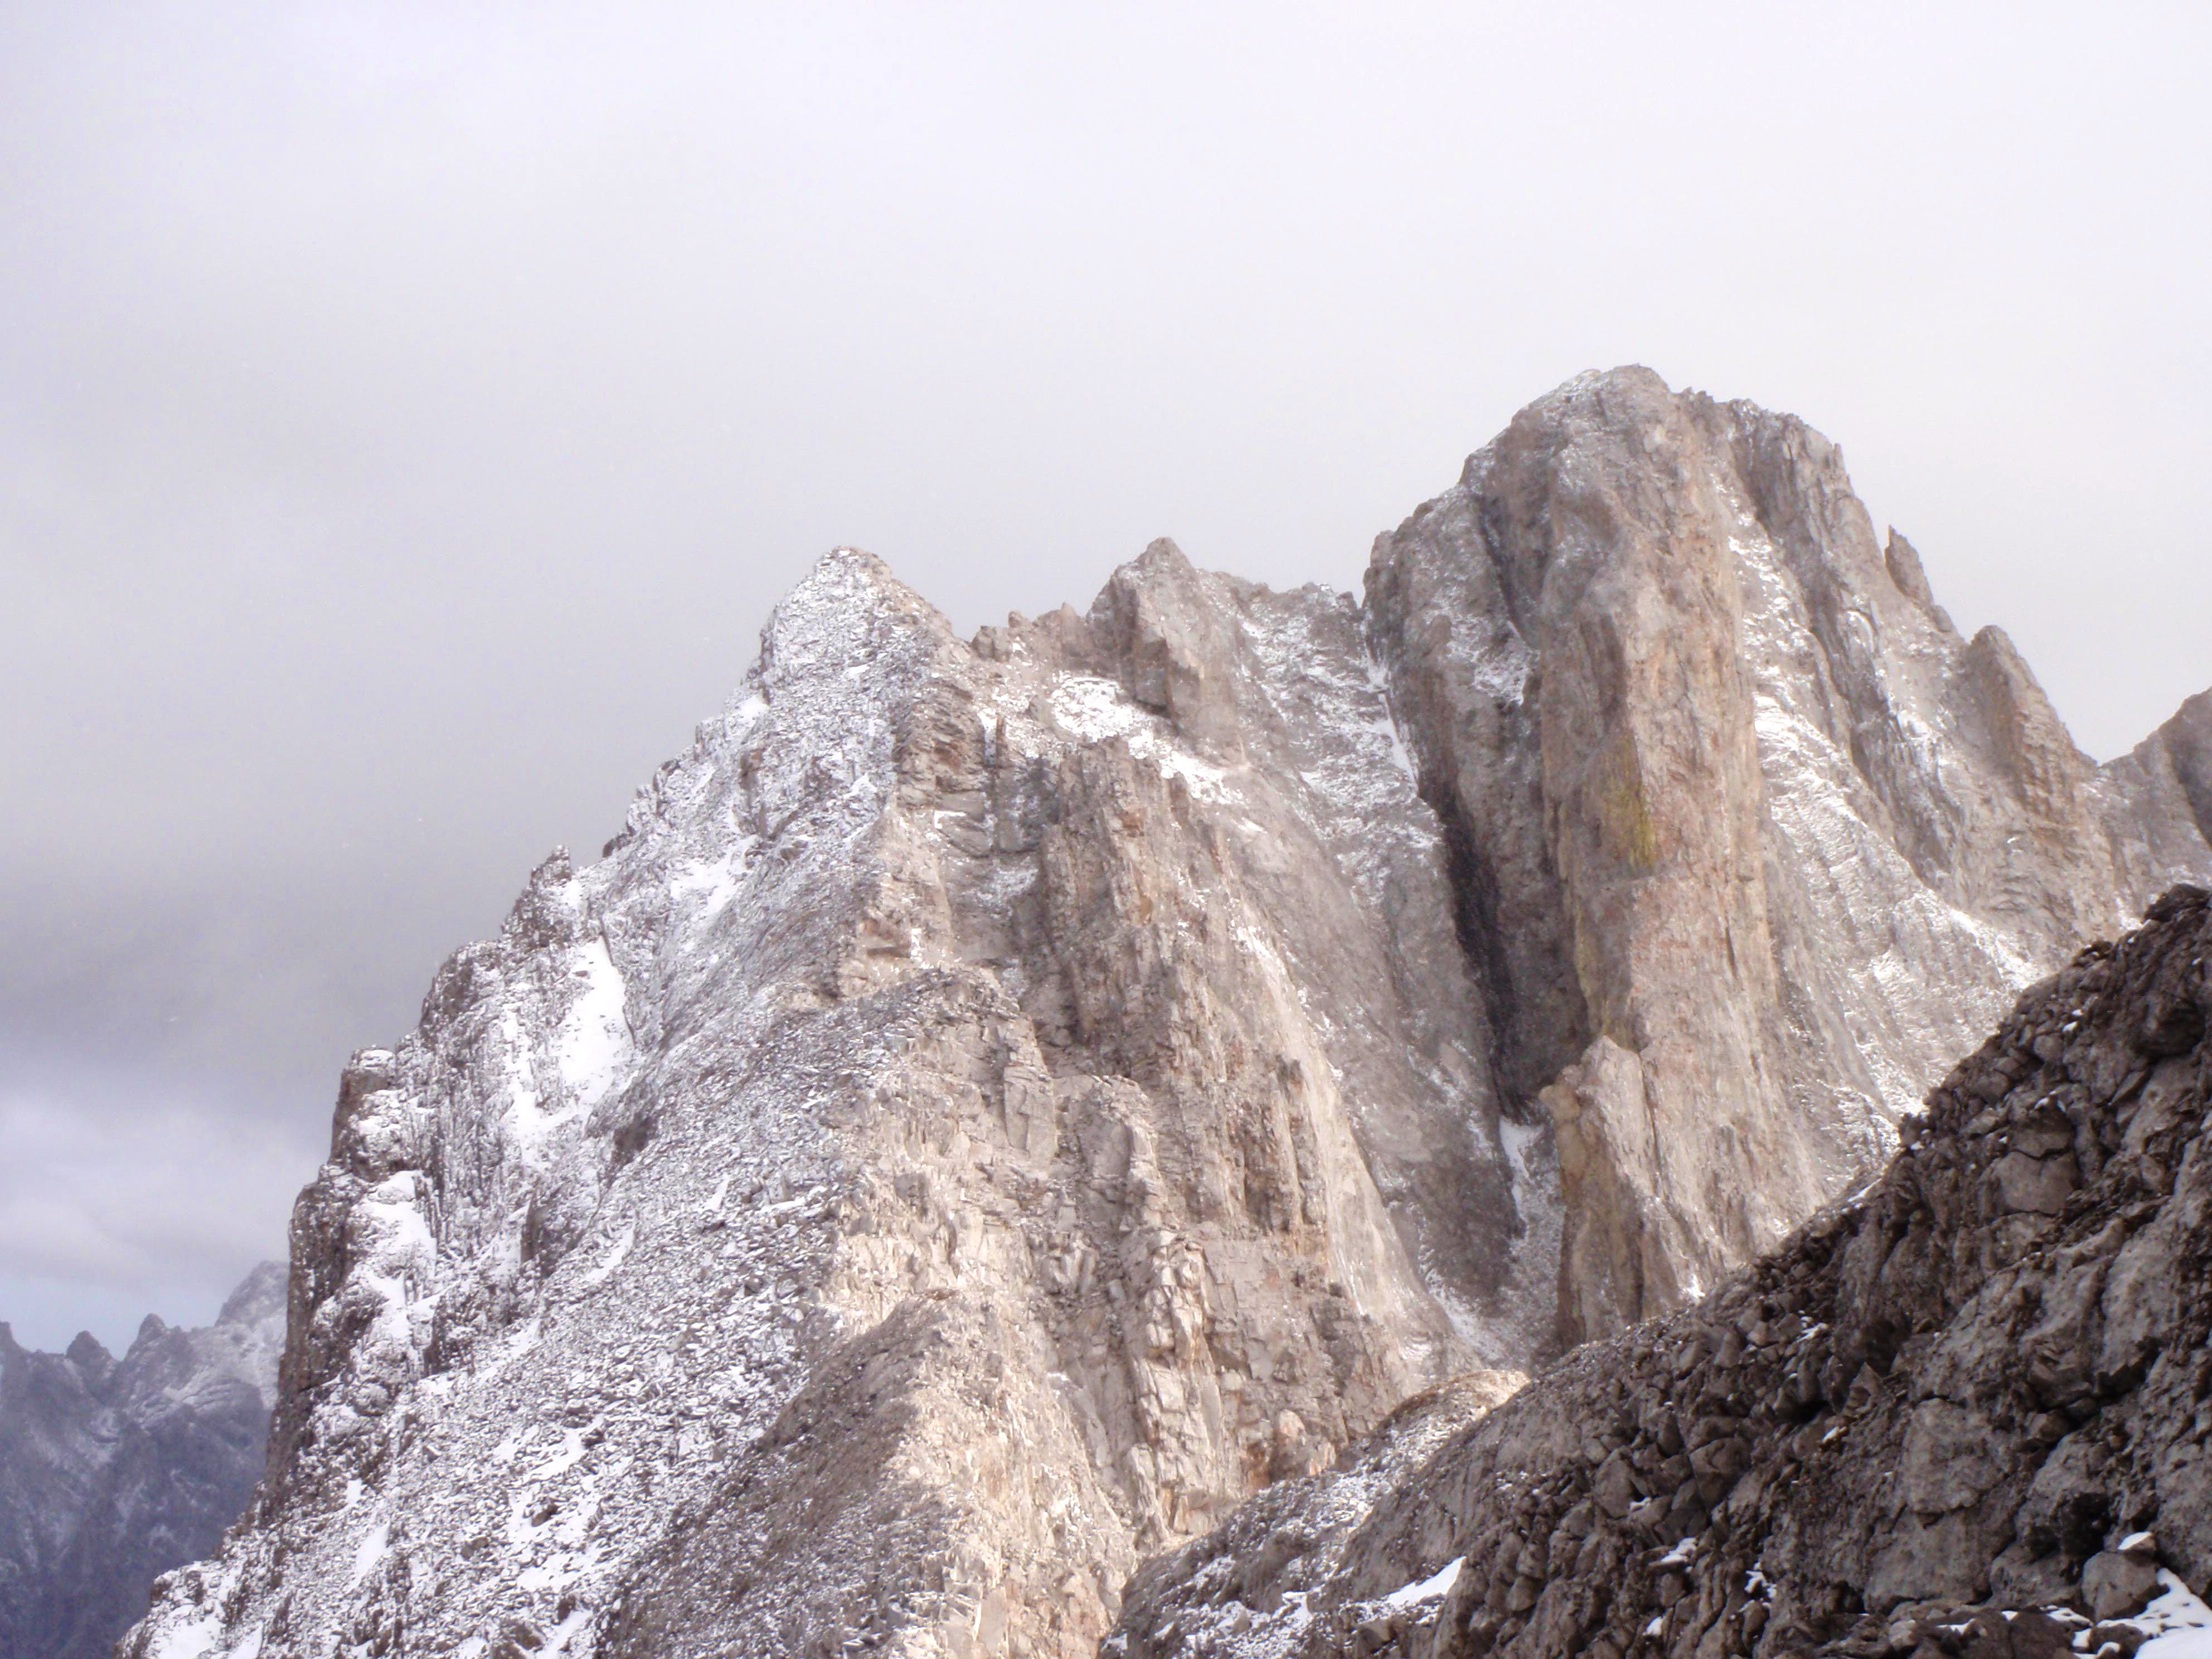 North Ridge/West Face of \'South Schlee\', 5.6, Alpine II